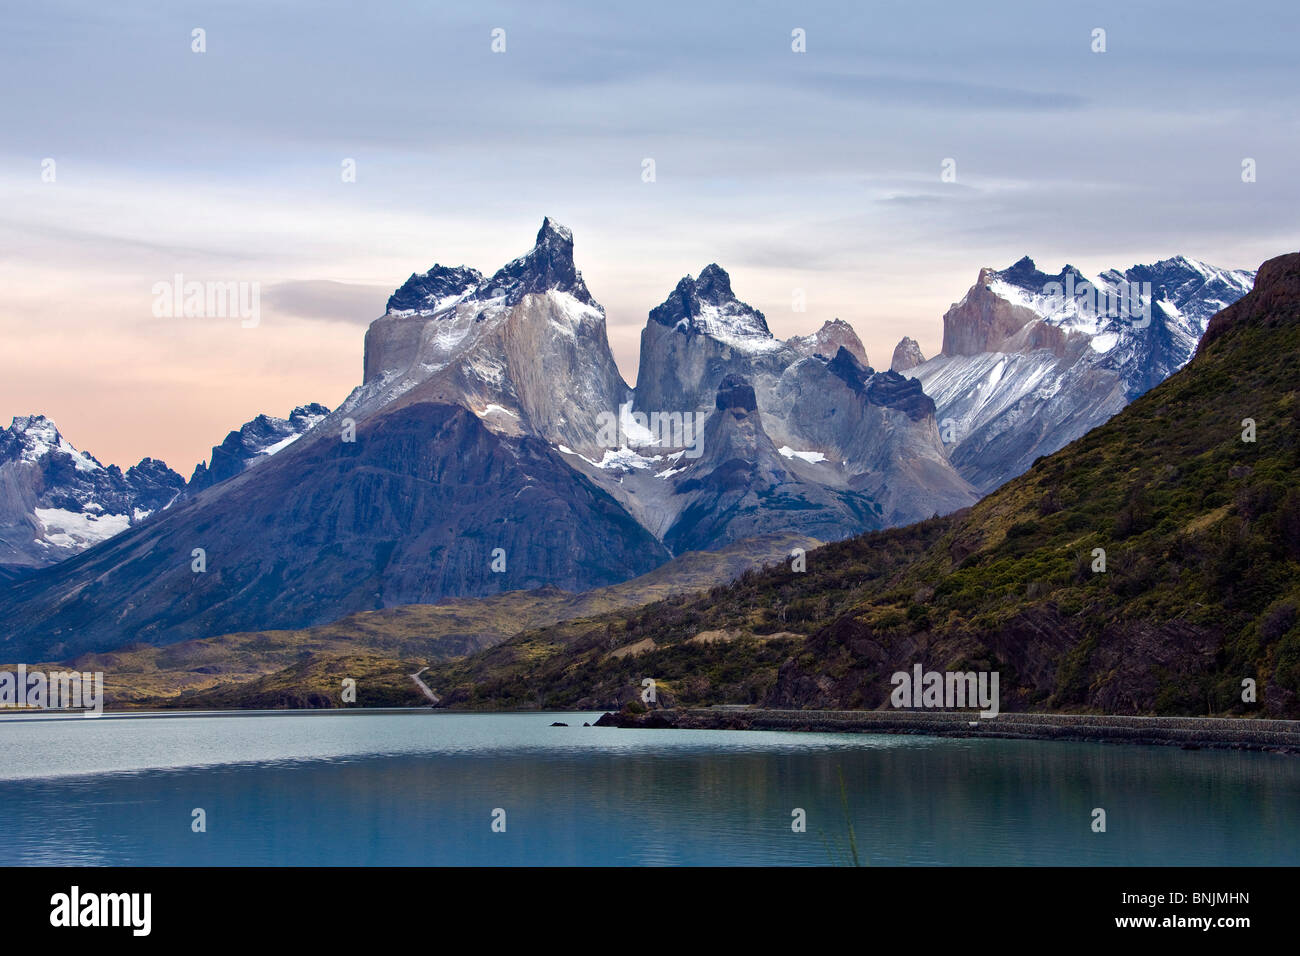 Chile South America March 2009 Chilean Patagonia Torres del Paine National Park landscape scenery nature mountains - Stock Image